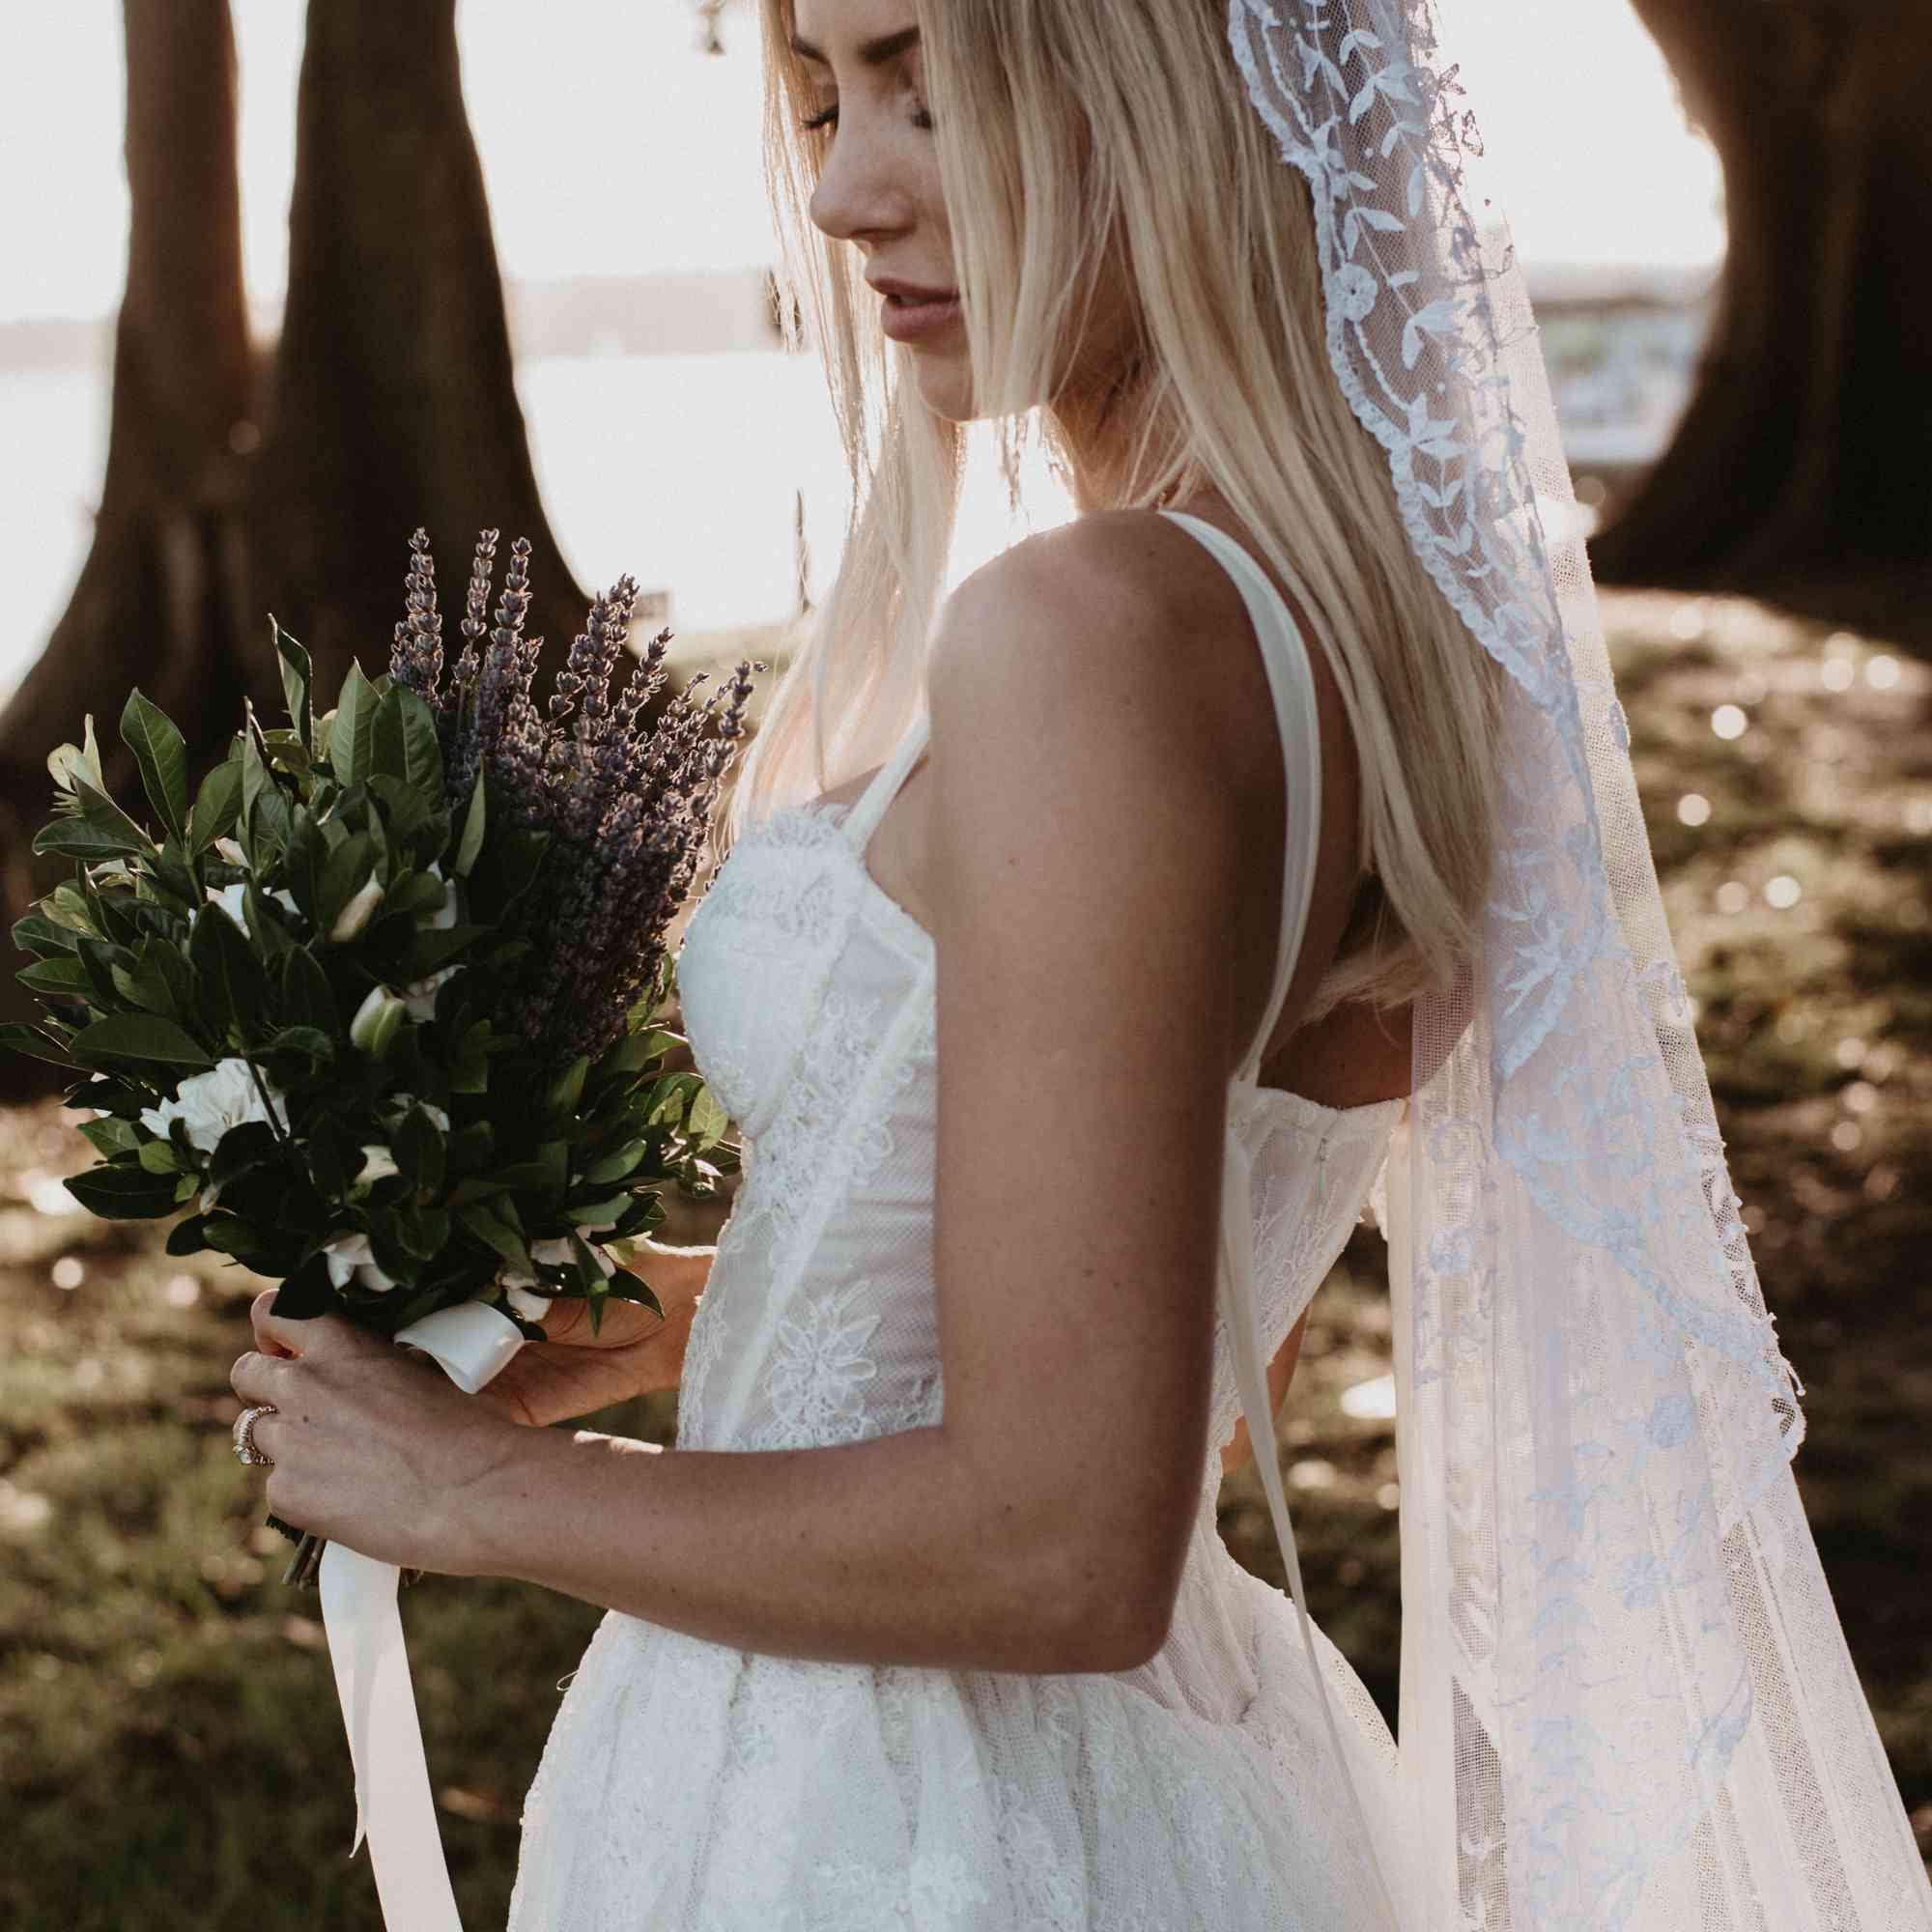 Bride wearing veil and holding flowers